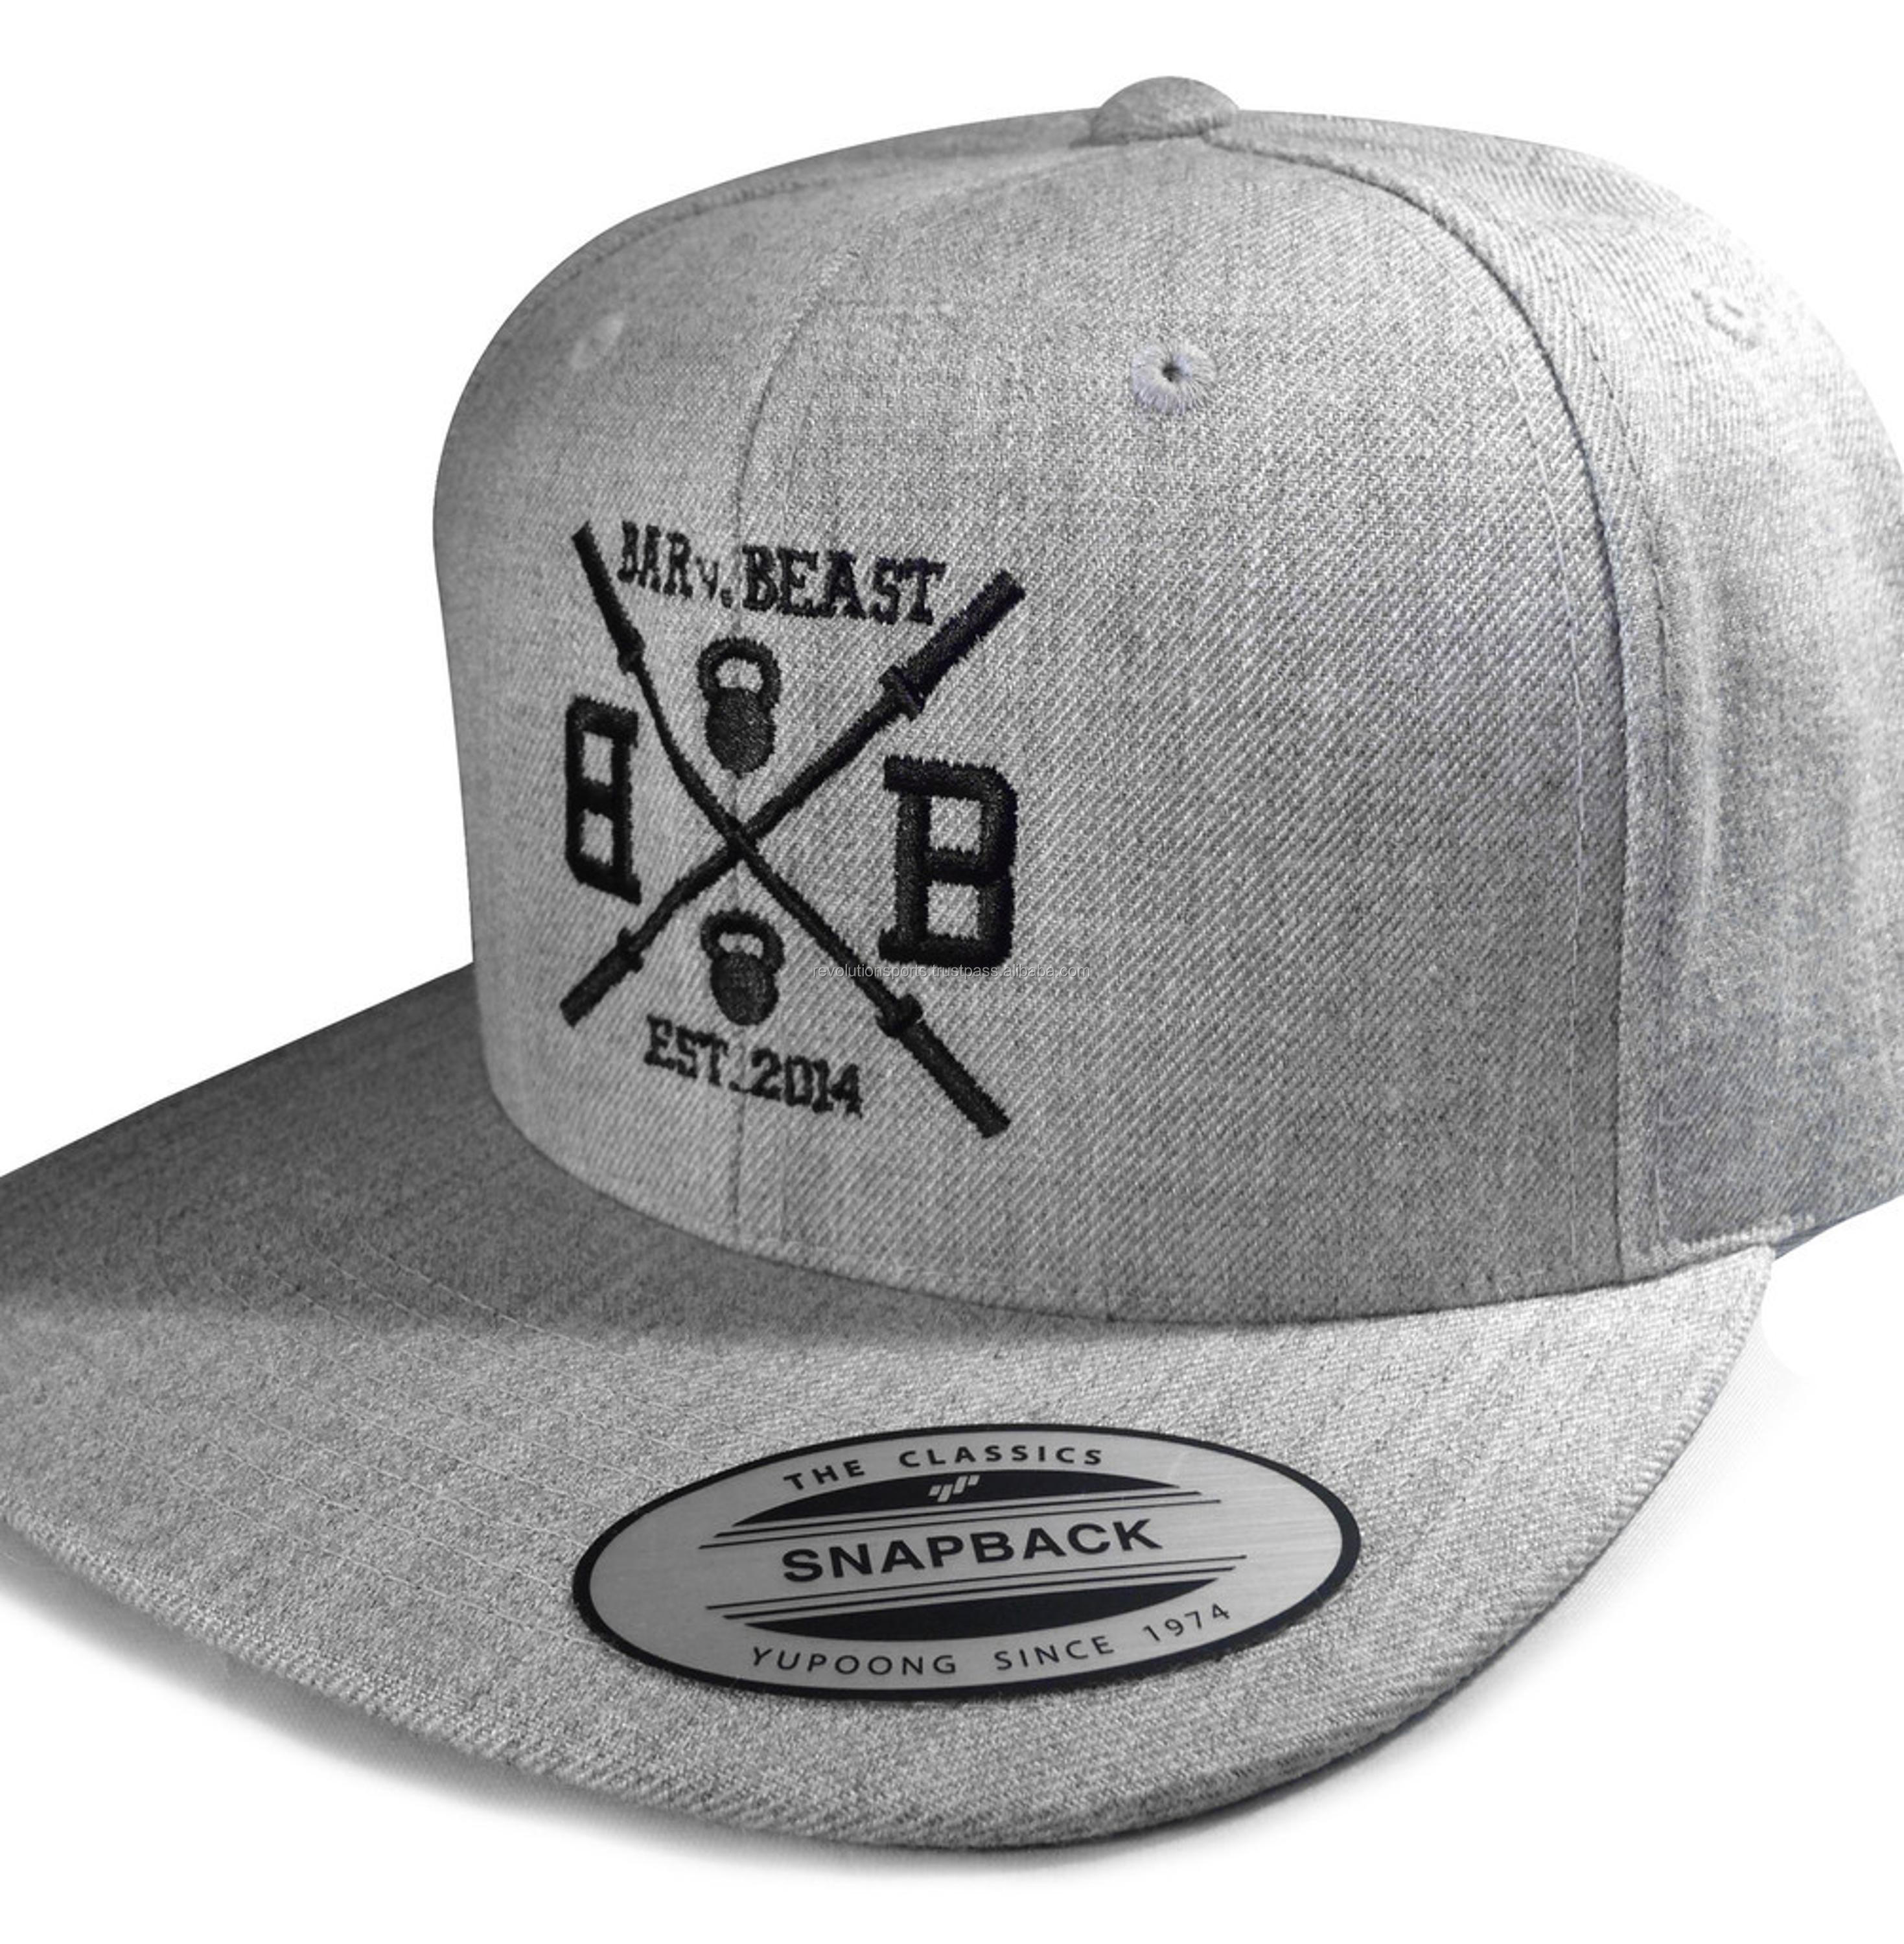 2018 New arrival Grey sports caps/snap backs with Custom logo For Brand promotion